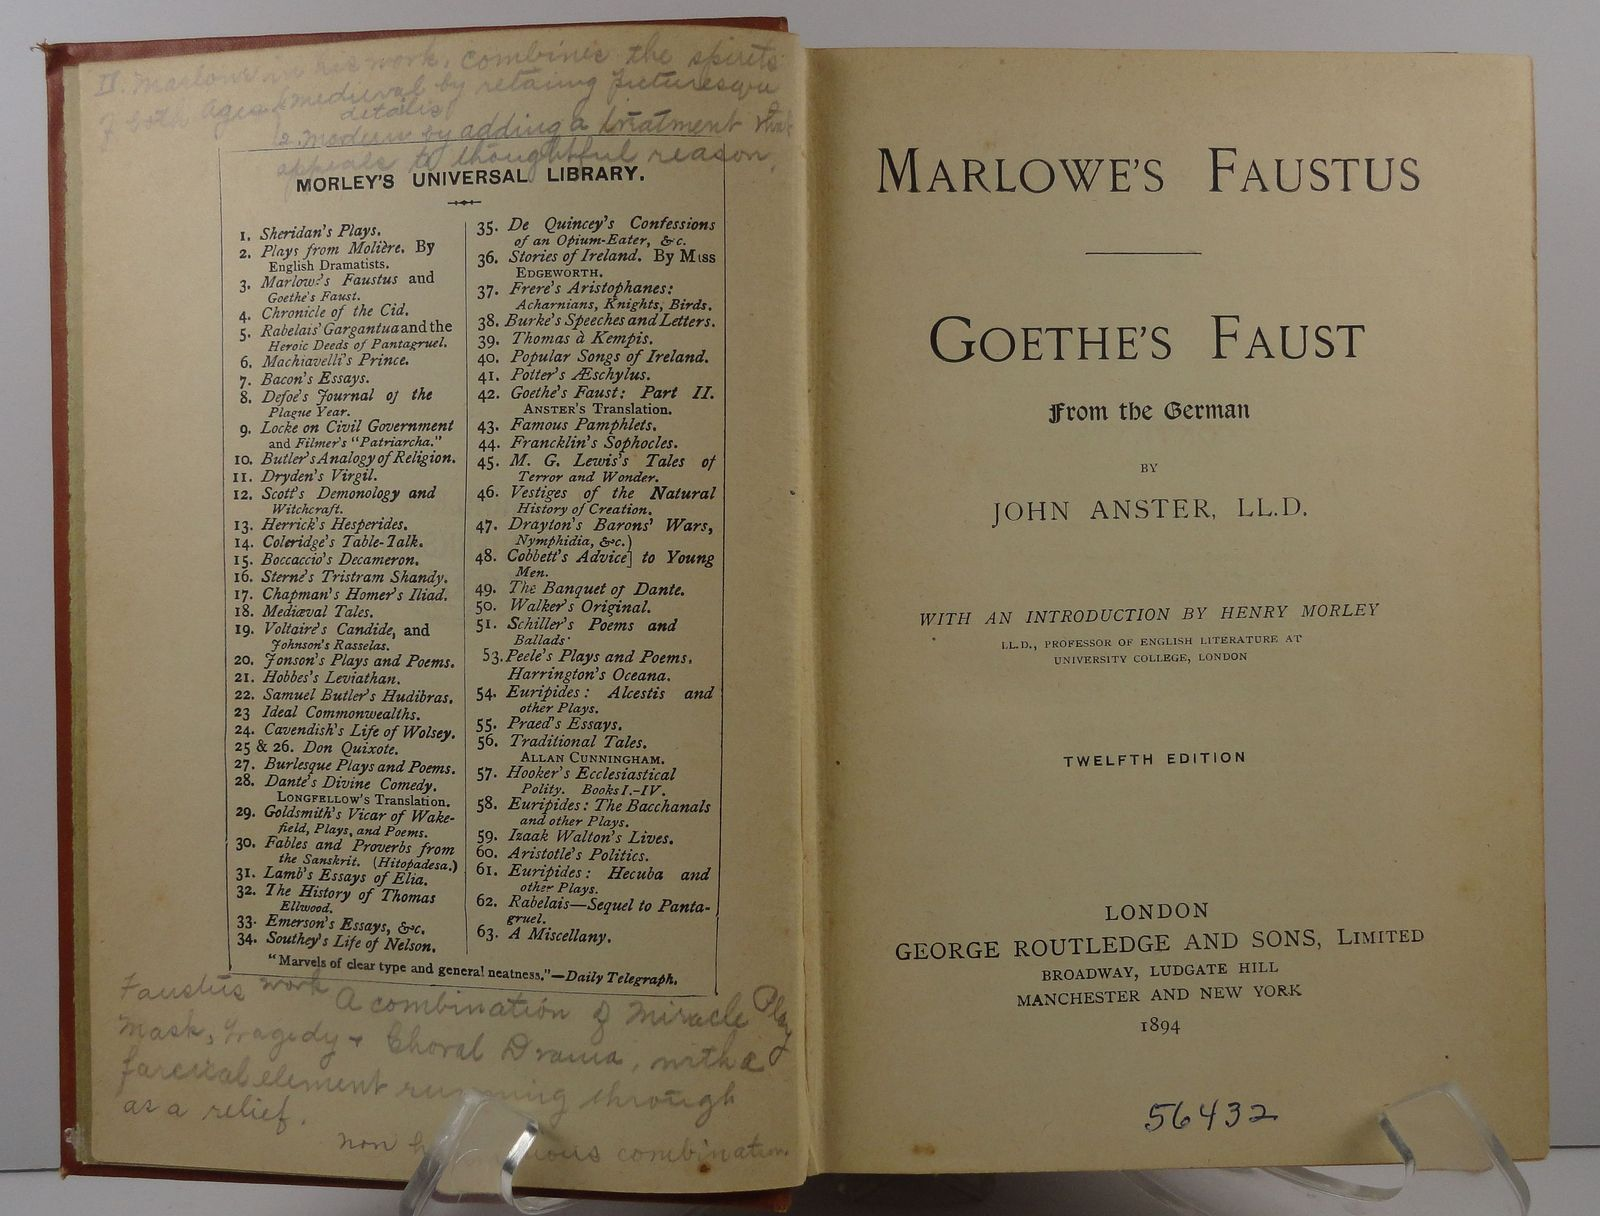 Marlowe's Faustus Goethe's Faust by John Anster 1894